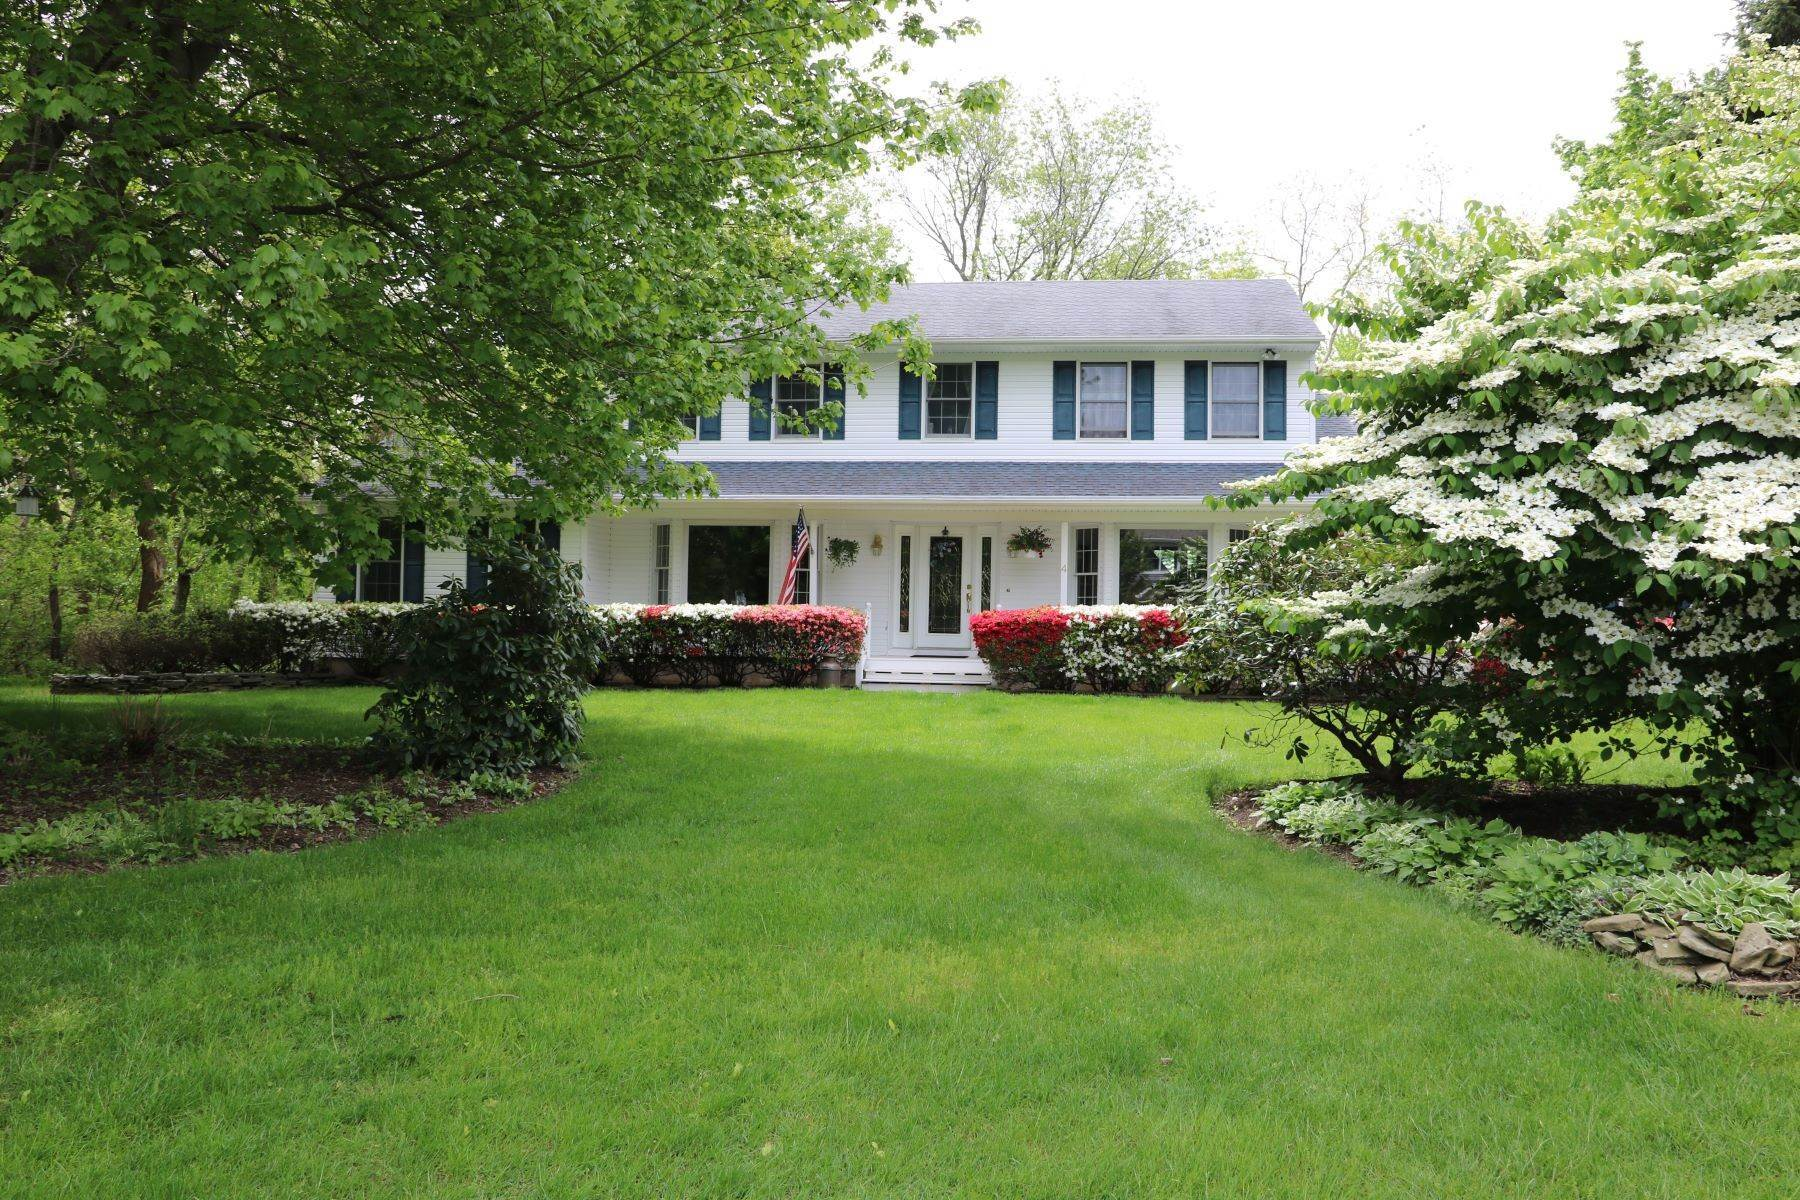 Single Family Homes for Sale at 4 Sound Breeze Drive, Miller Place, Ny, 11764 4 Sound Breeze Drive Miller Place, New York 11764 United States